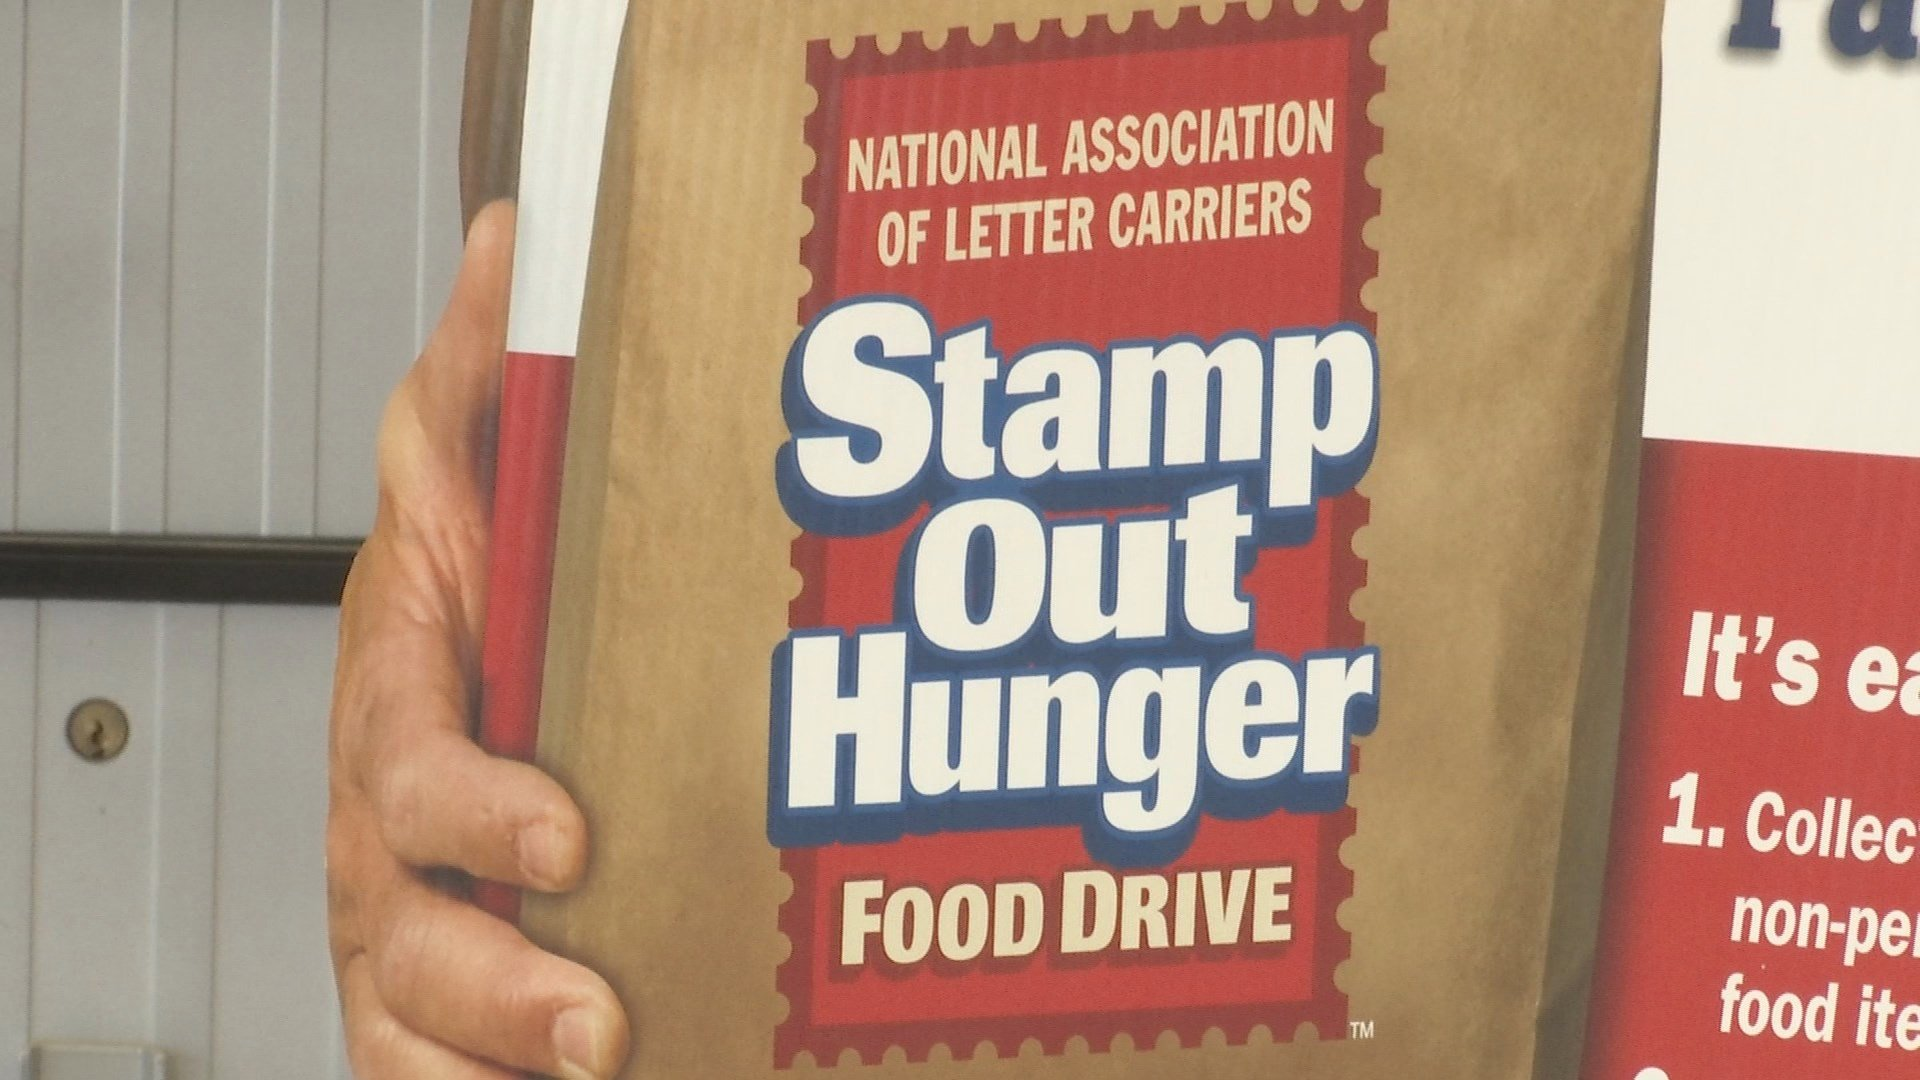 26th annual Food Drive taking place Saturday